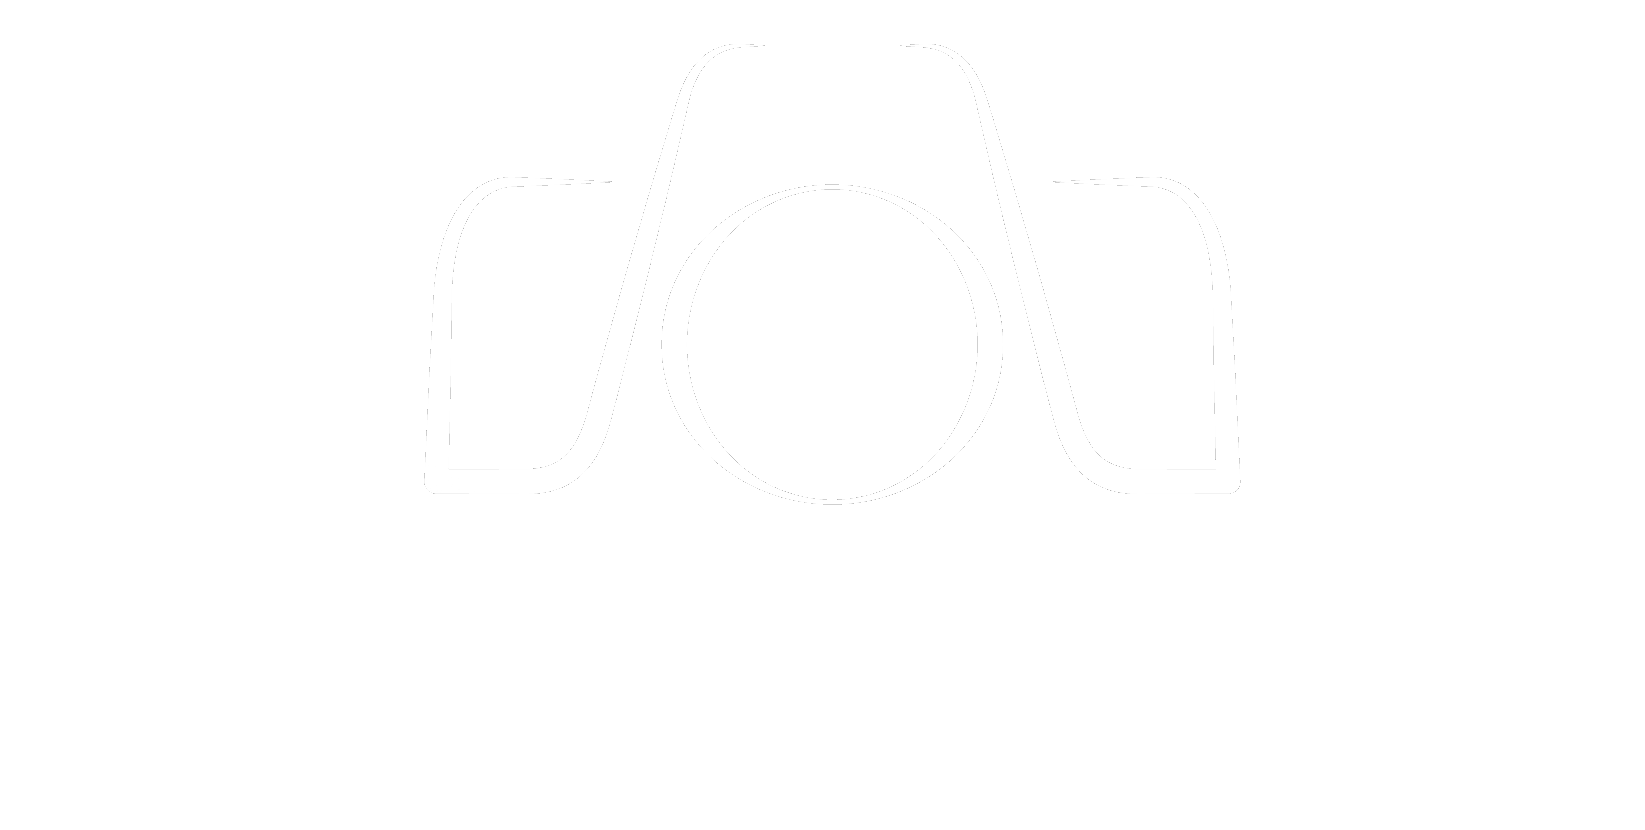 Dave Proctor Photography